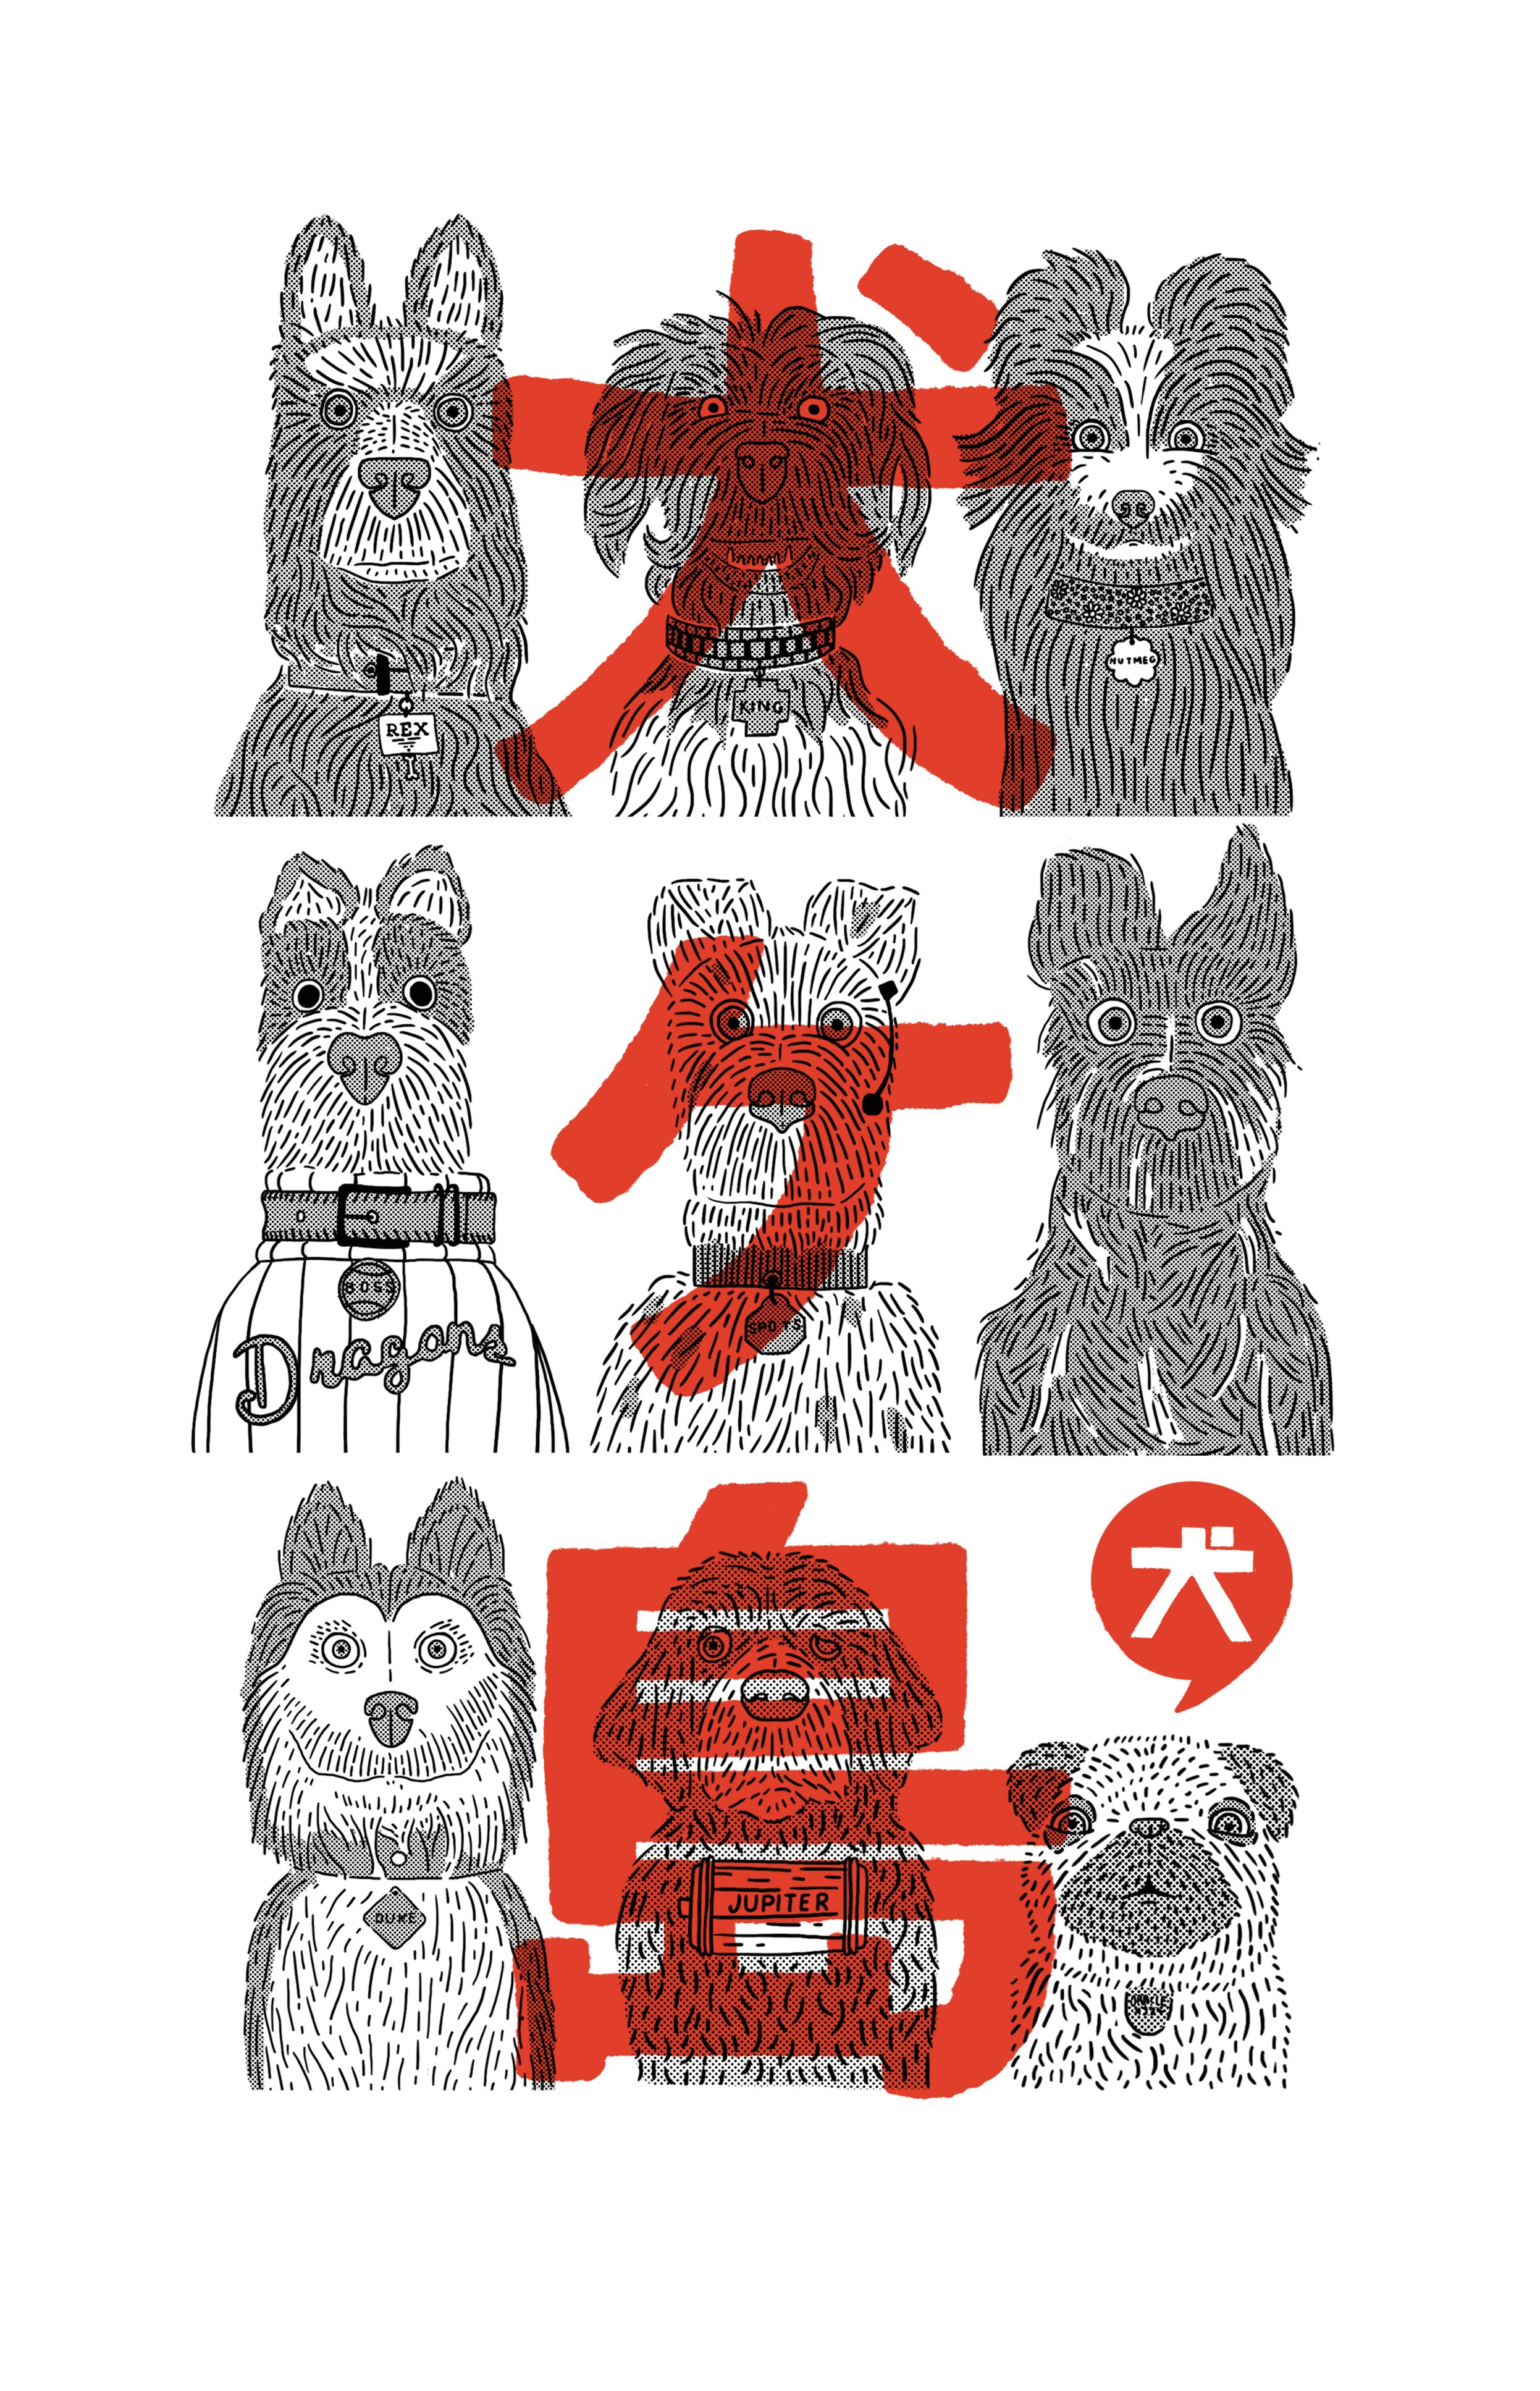 Isle Of Dogs Wes Anderson Wes Anderson Movies Posters Wes Anderson Poster Wes Anderson Design